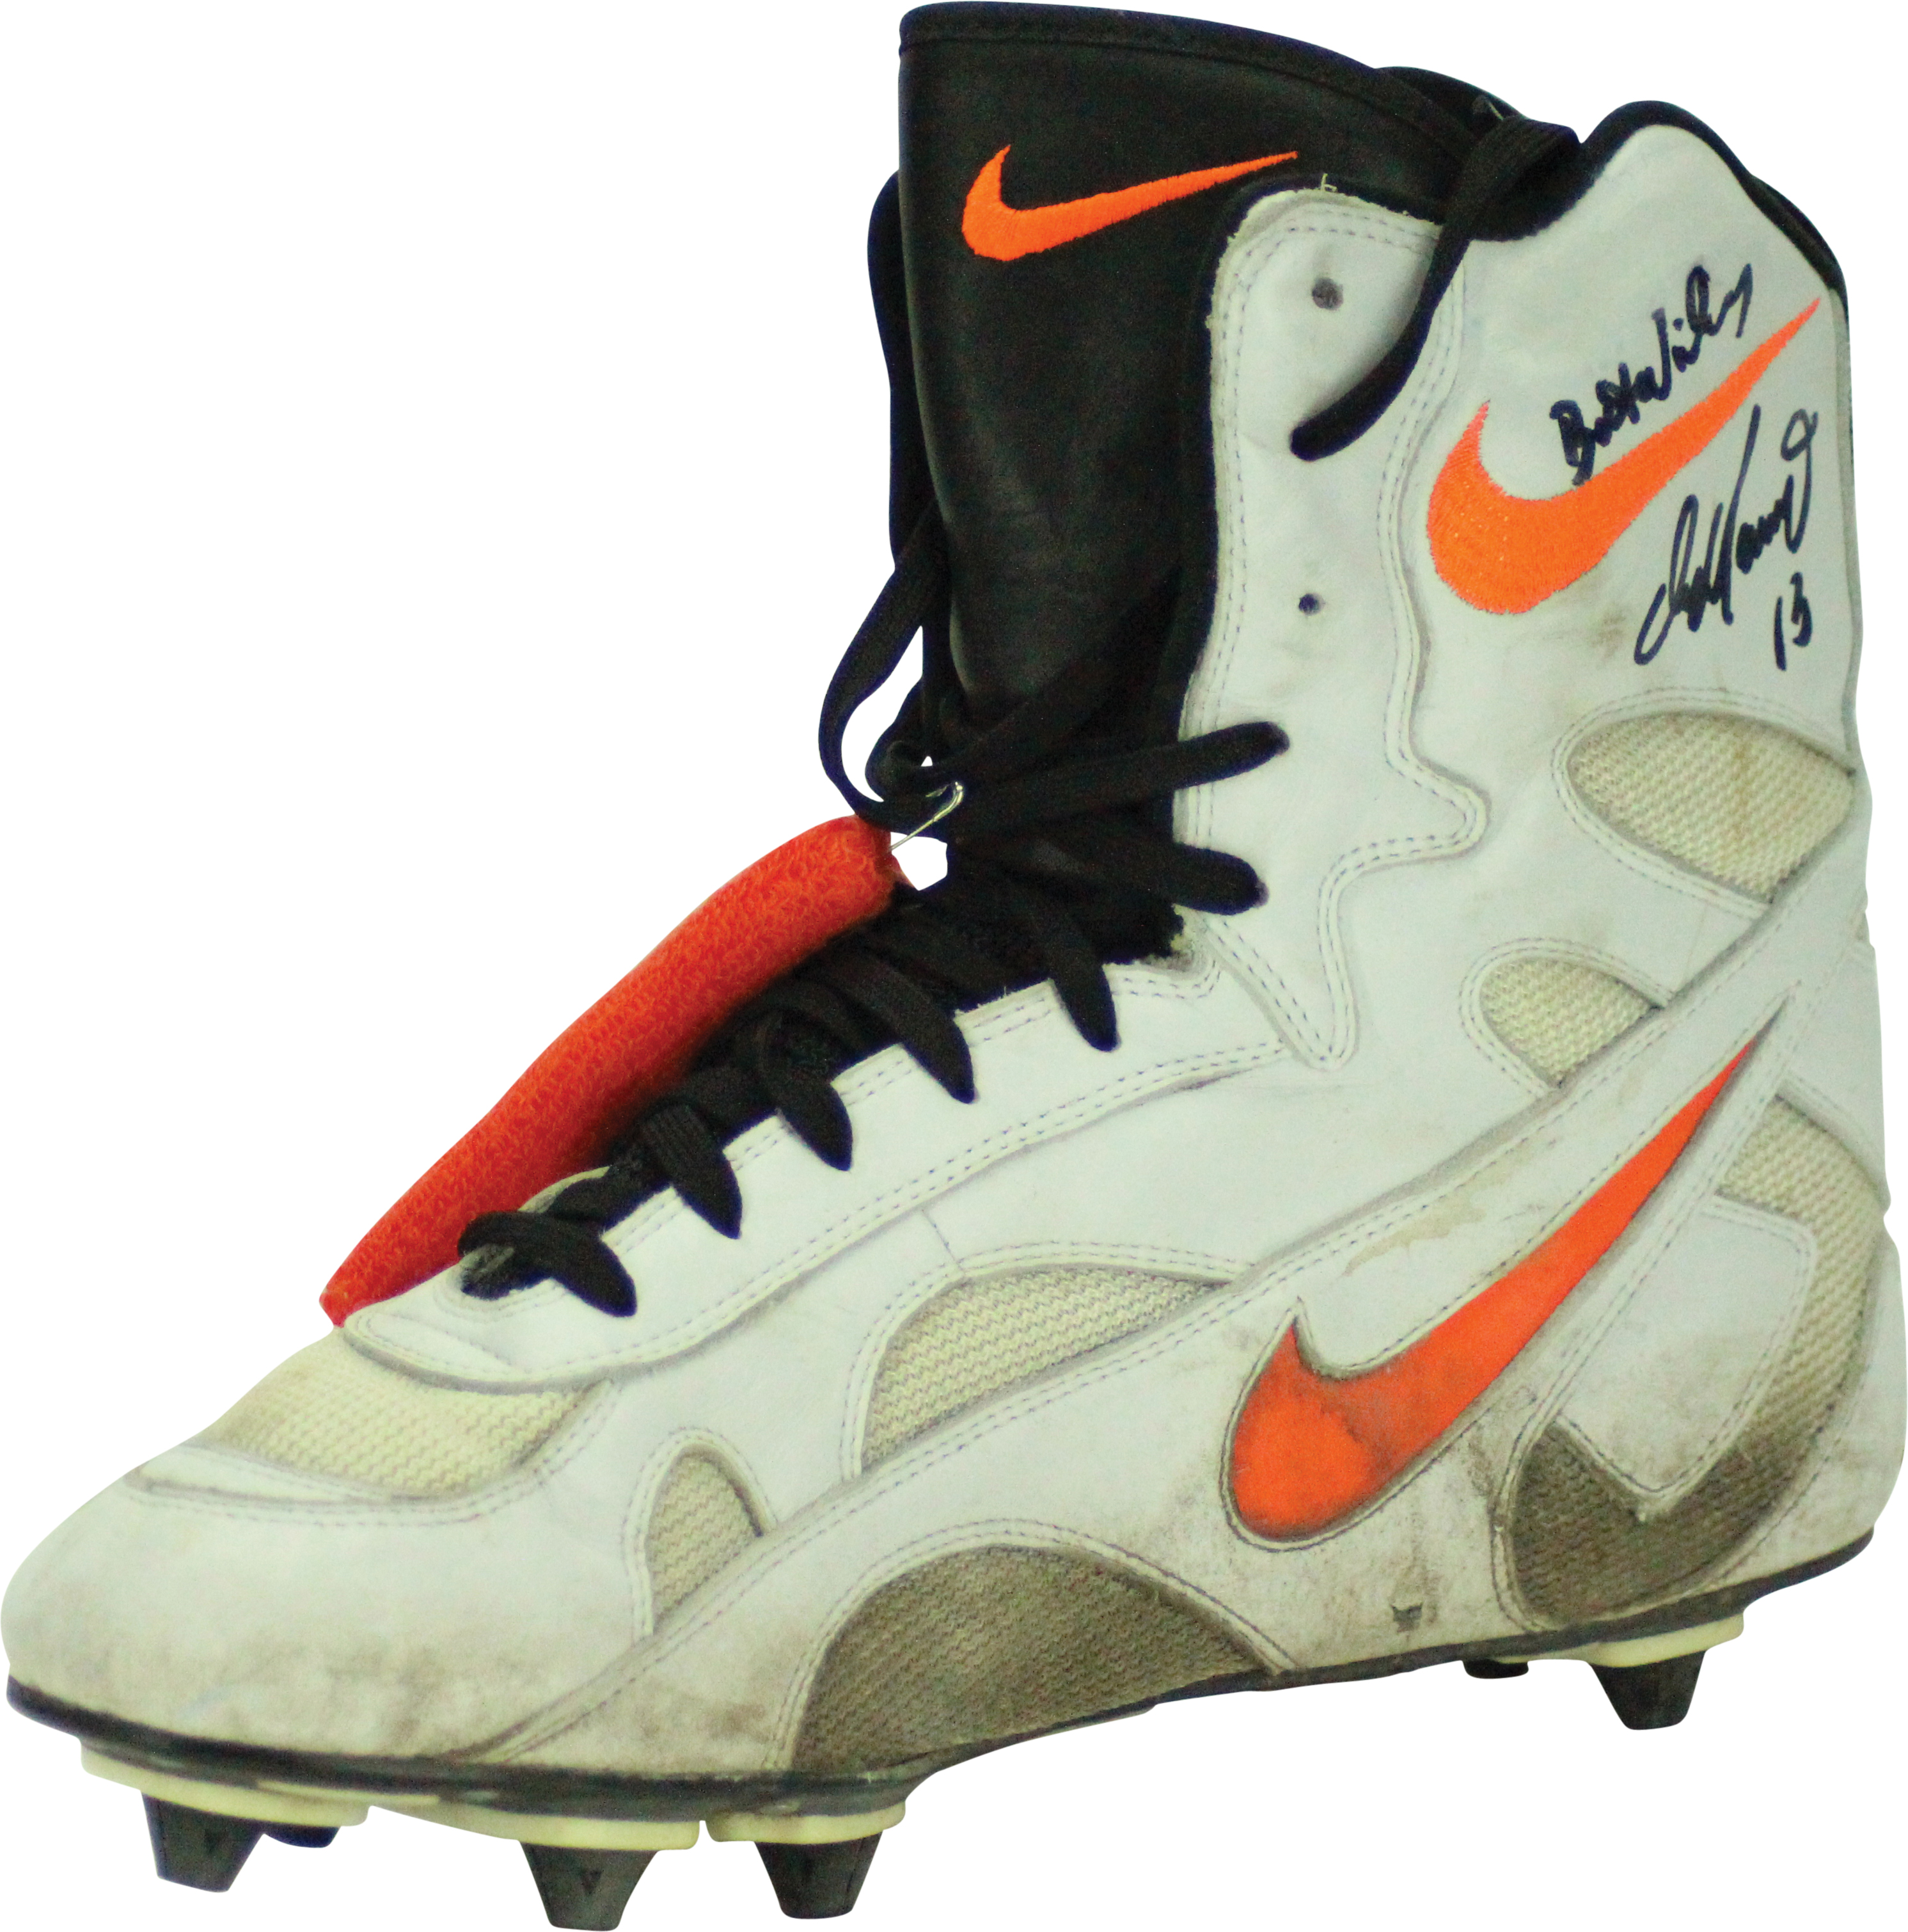 6cbed7a428c5 ... Dan Marino Miami Dolphins Game Used Worn and Hand Signed Custom Made  Nike Football Cleats and ...